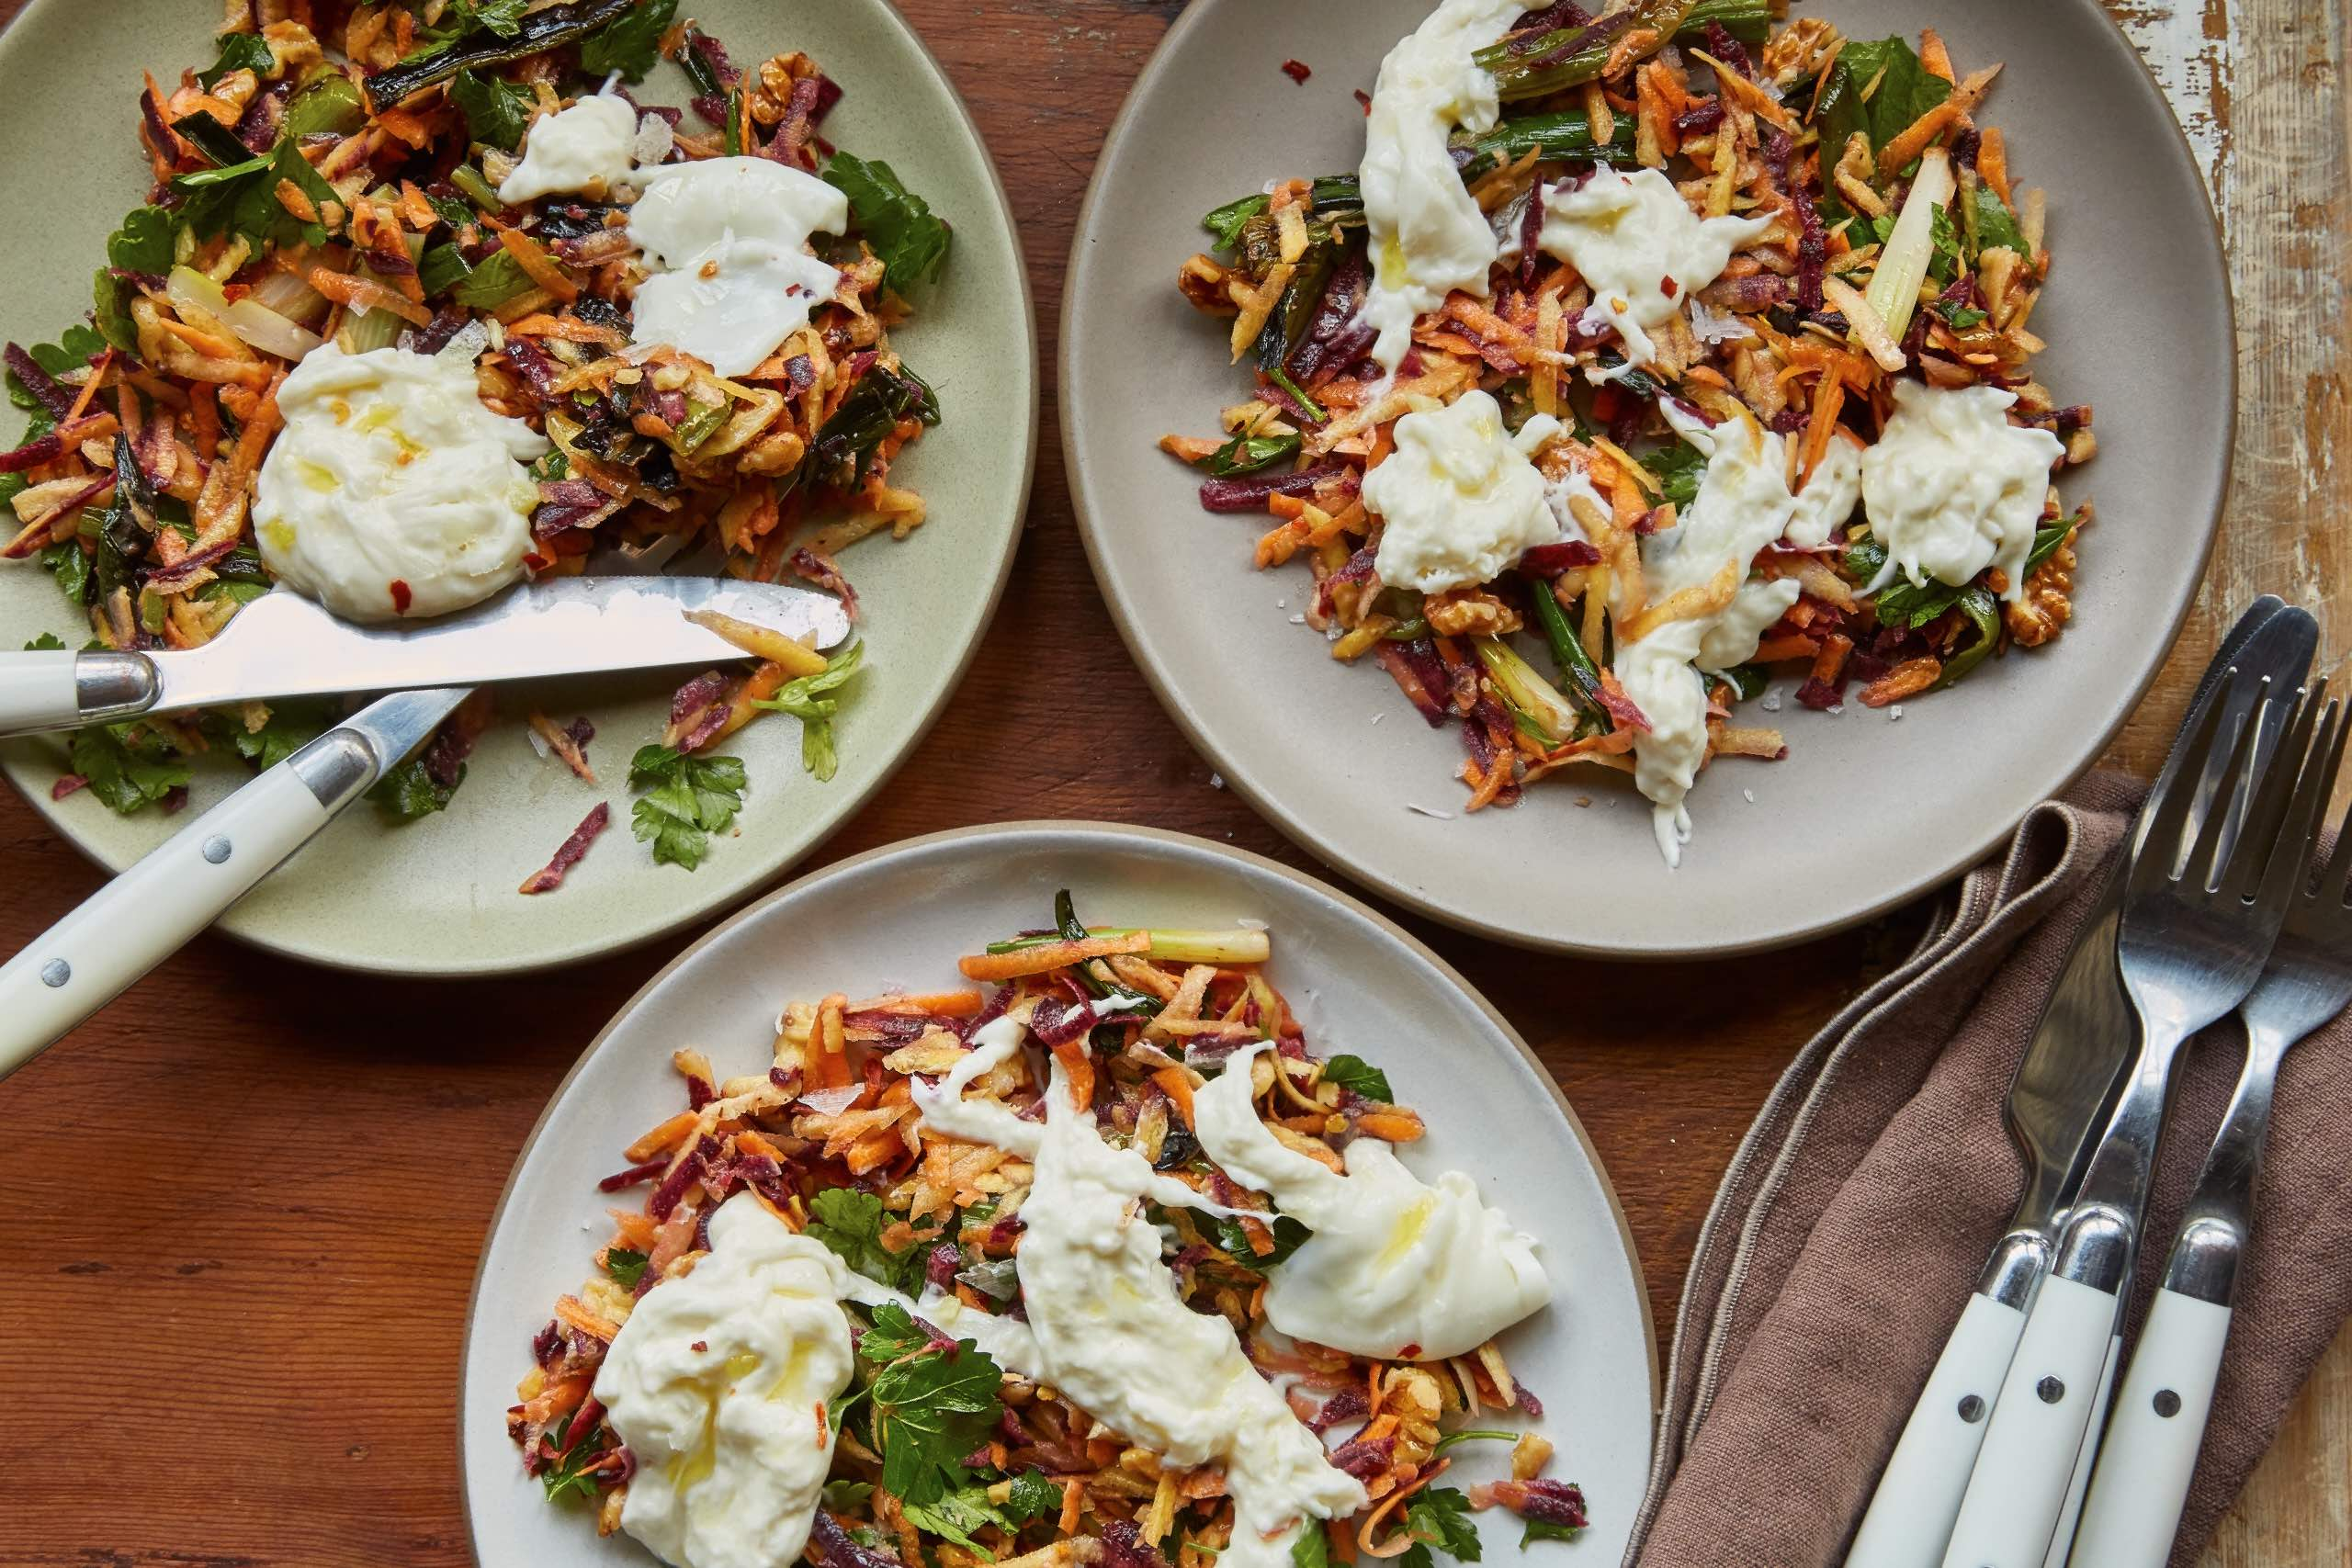 Grated carrot salad with grilled scallions, walnuts, and burrata